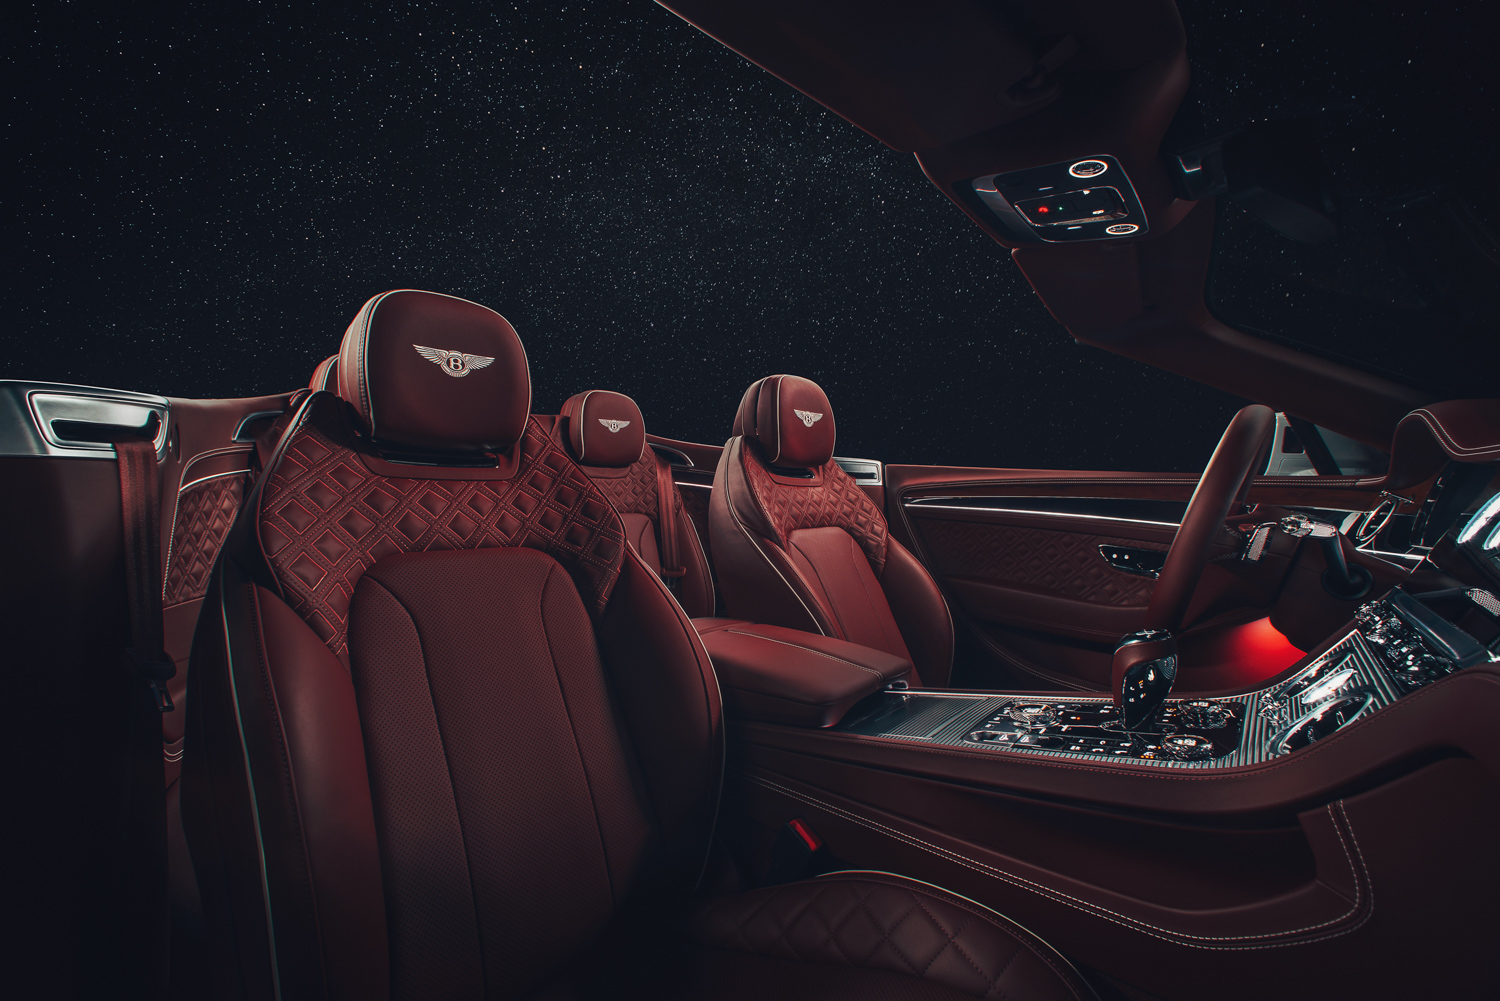 2019 Bentley Continental GT Convertible stary night seats